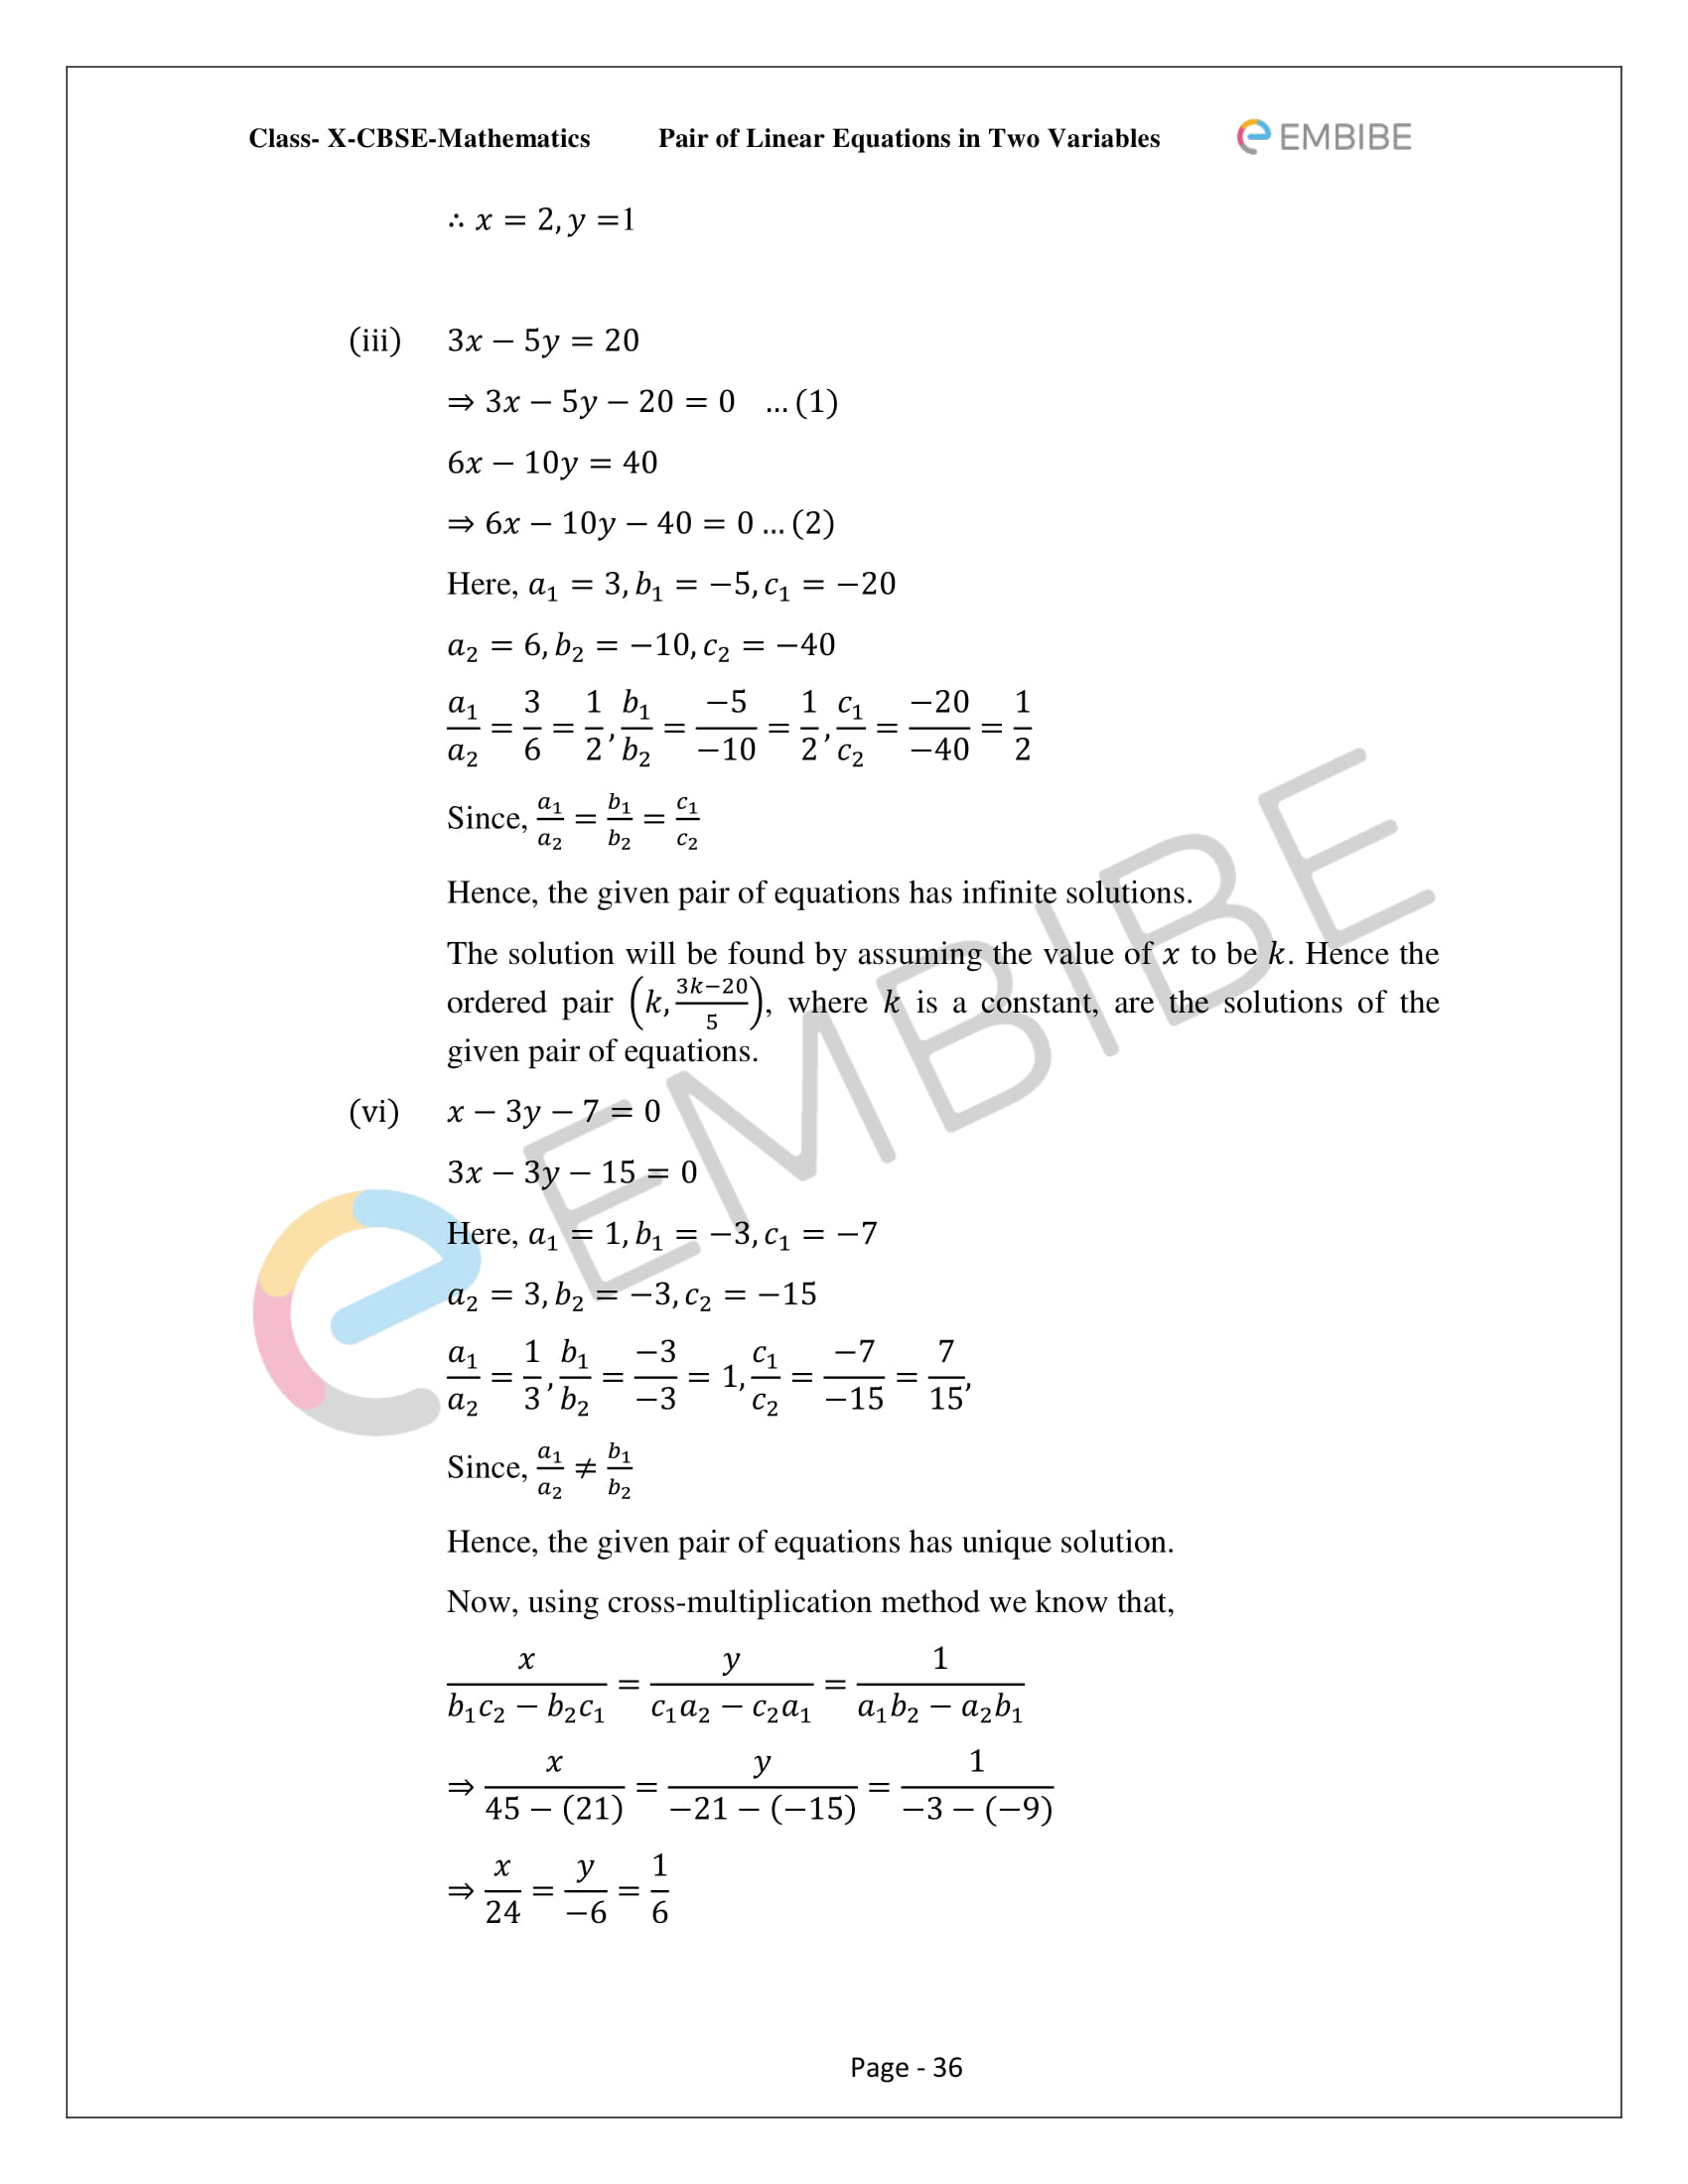 CBSE NCERT Solutions For Class 10 Maths Chapter 3 - Pair of Linear Equations In Two Variables - 36